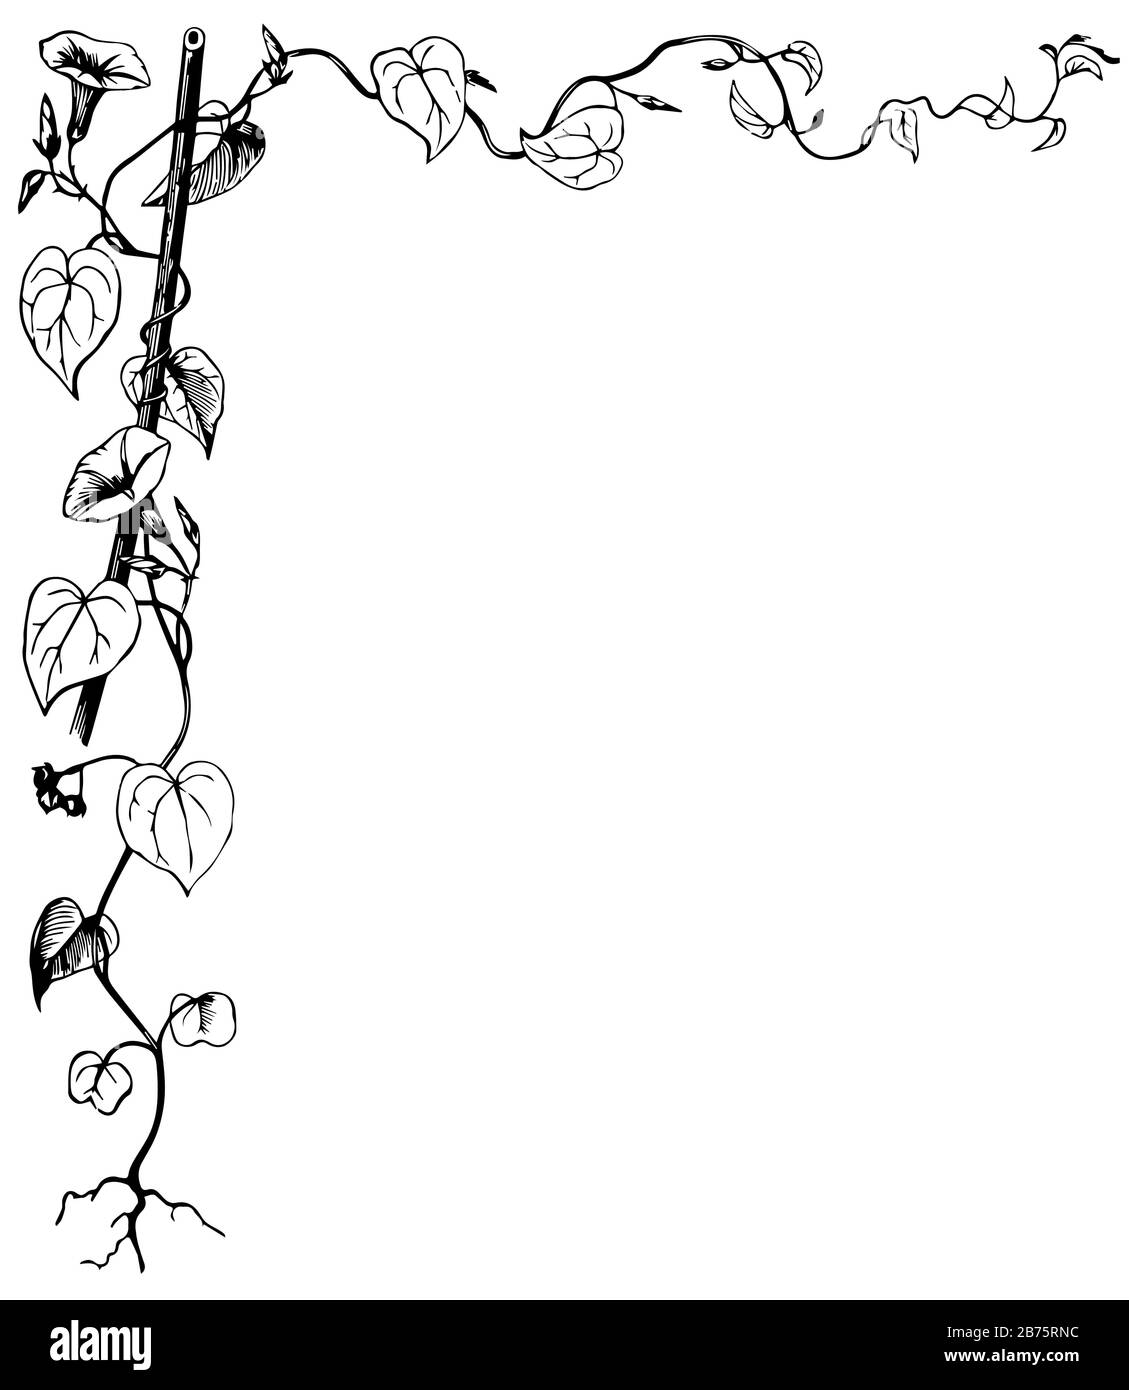 Morning Glory Have Leaves Vine In This Border Vintage Line Drawing Or Engraving Illustration Stock Vector Image Art Alamy